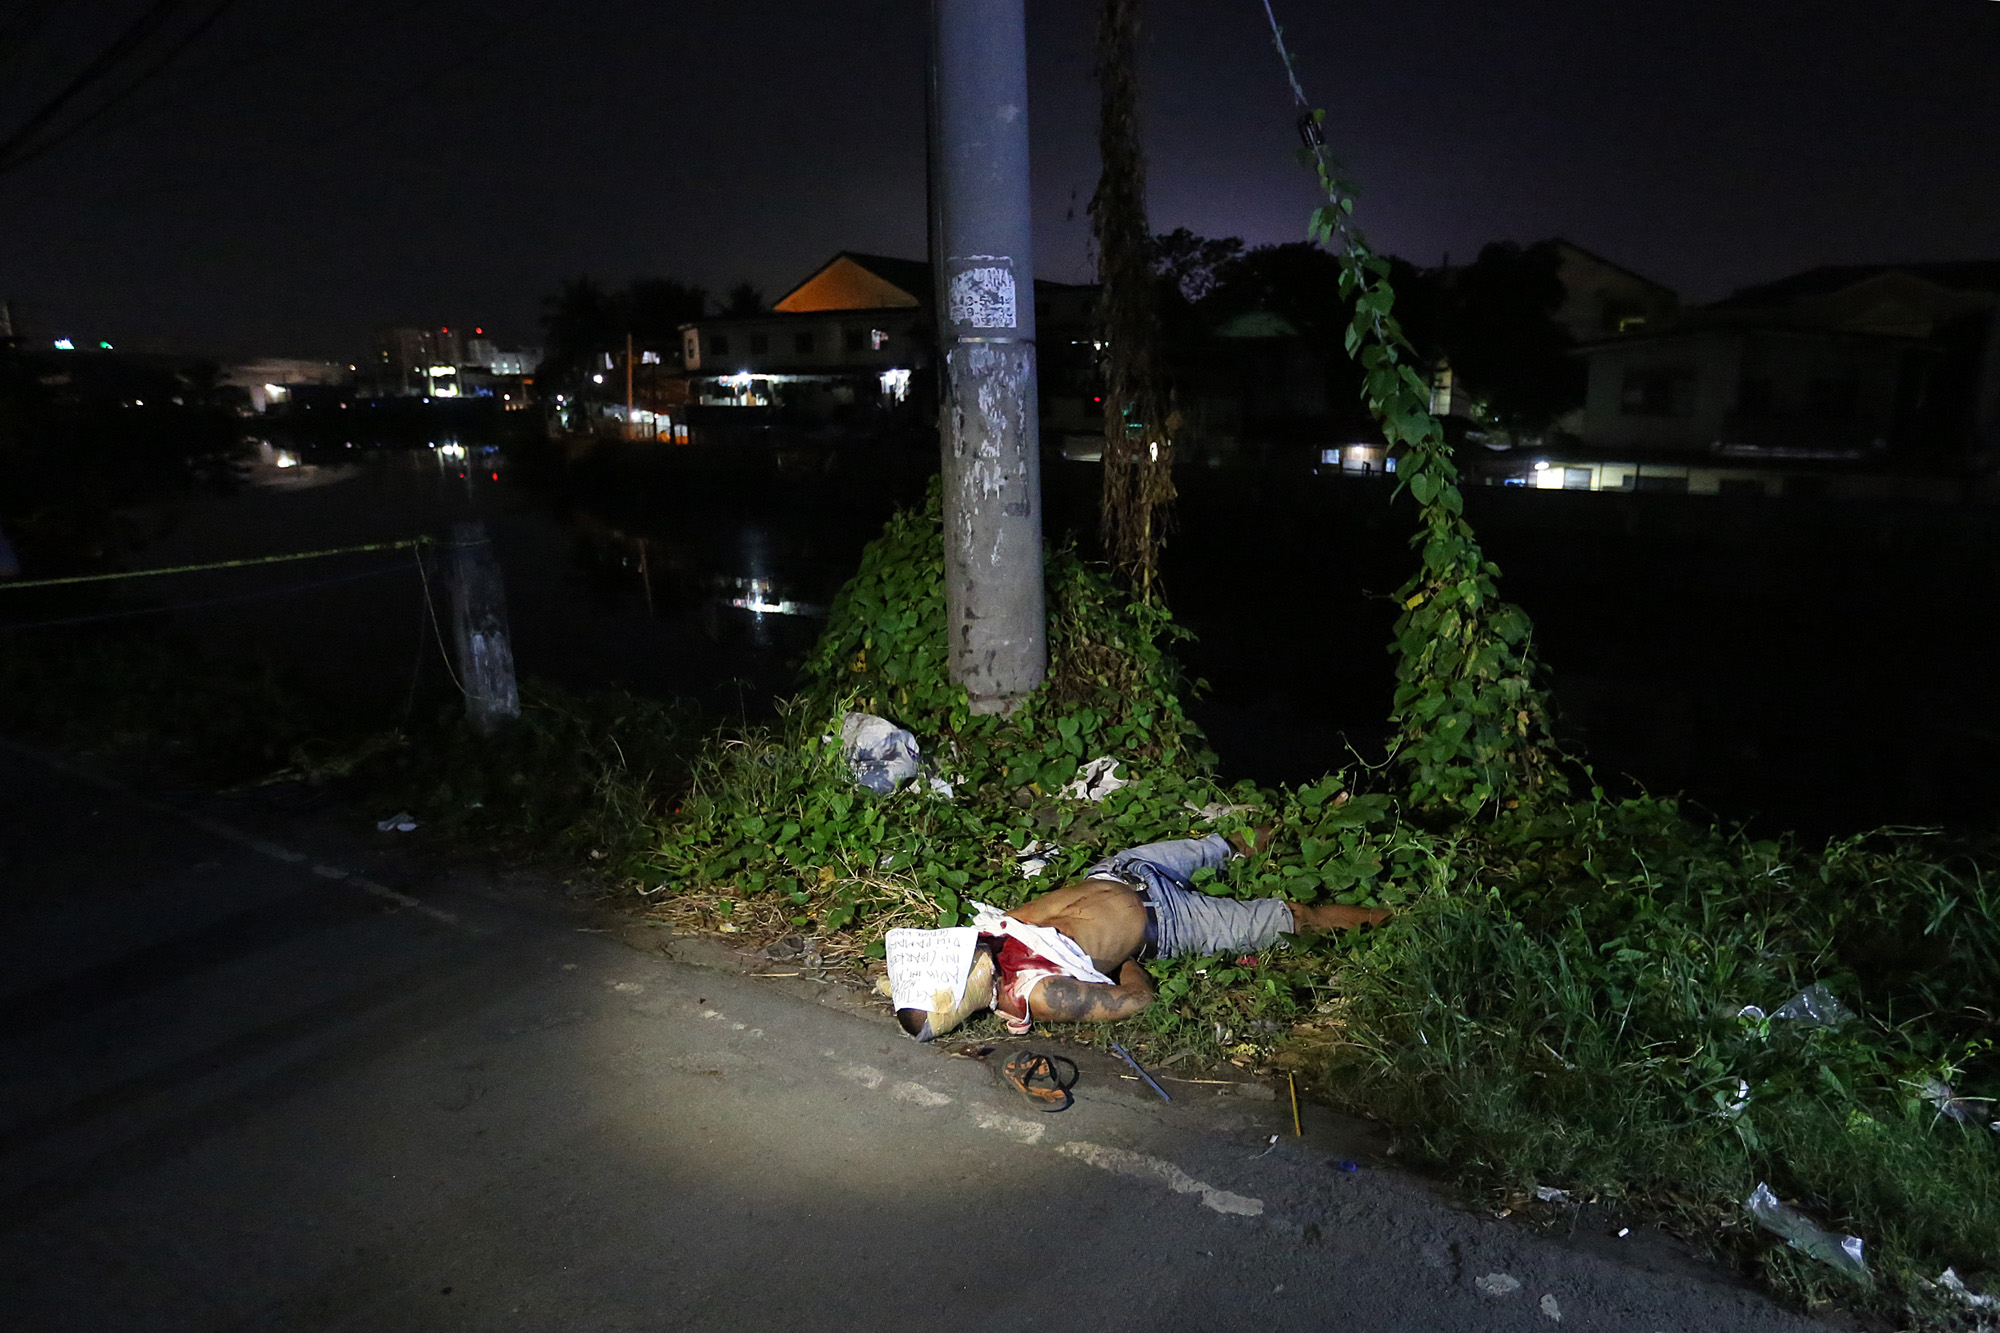 A police investigaor inspects a victim of summary execution dumped in Don Carlos Street, Barangay 190, Pasay City on November 16, 2016. A total of eight summary execution victims were found in Pasay and Makati City on the same night.